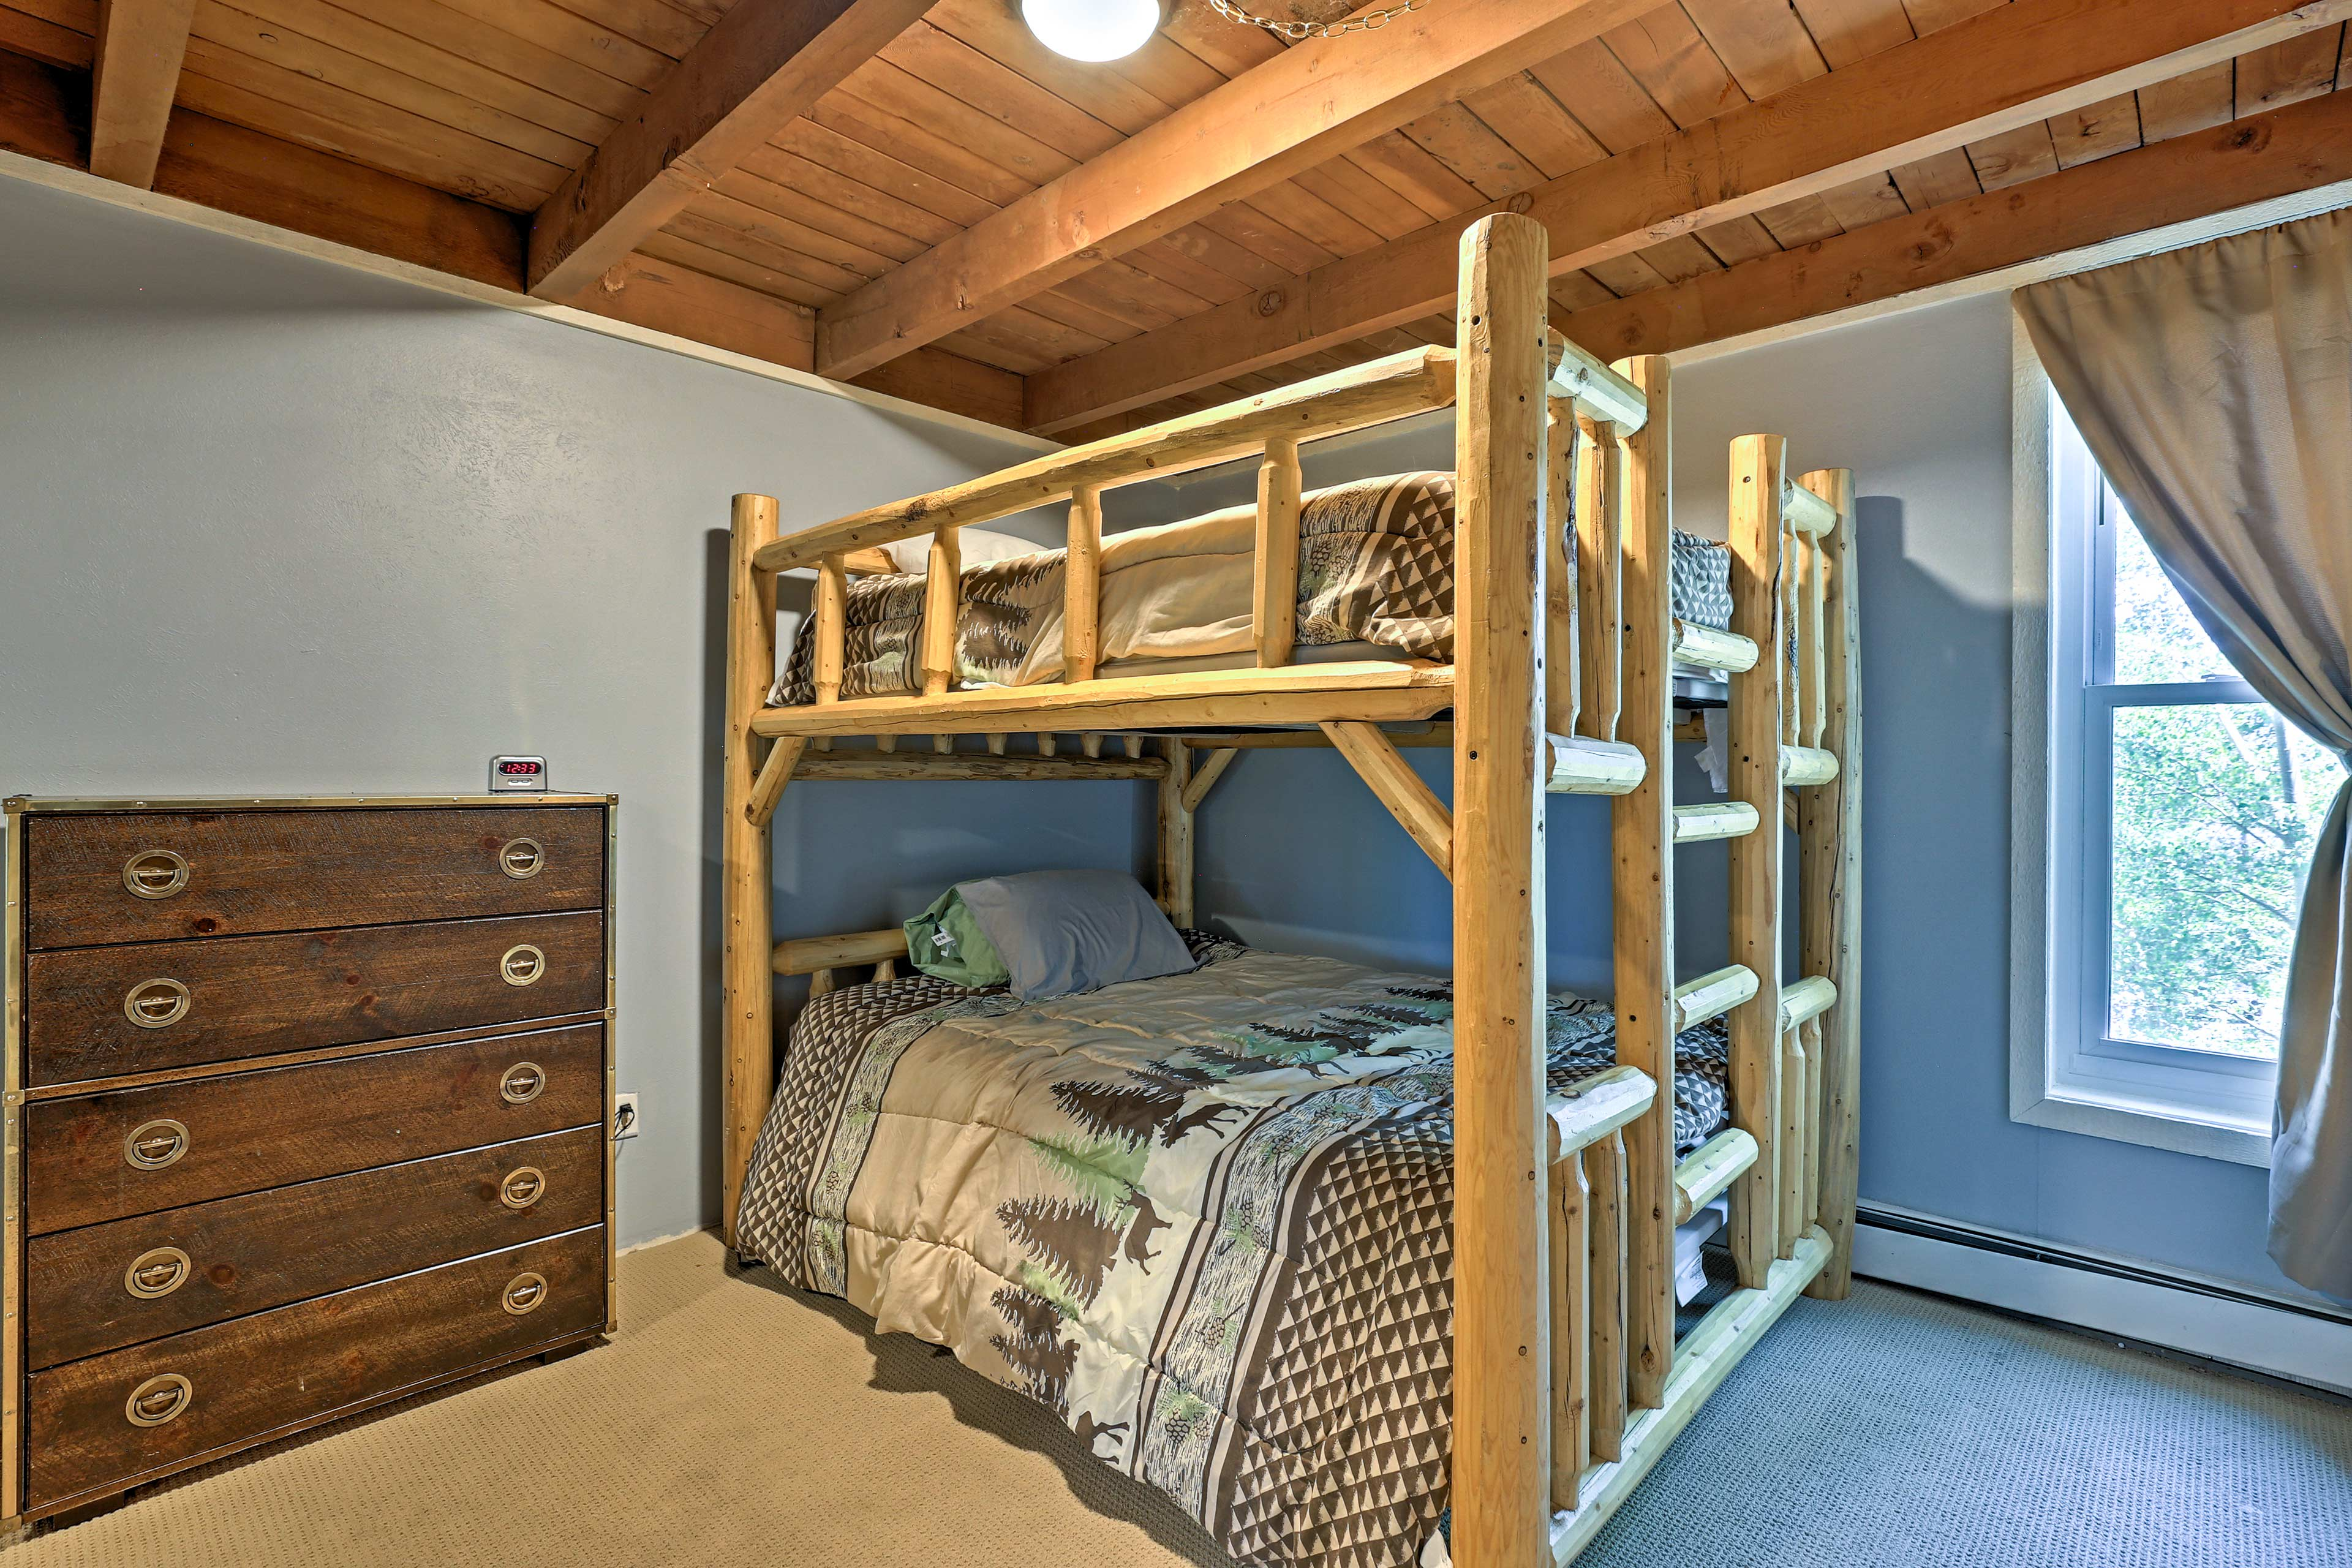 Kids or close friends will love the queen-over-queen bunk bed in this room!